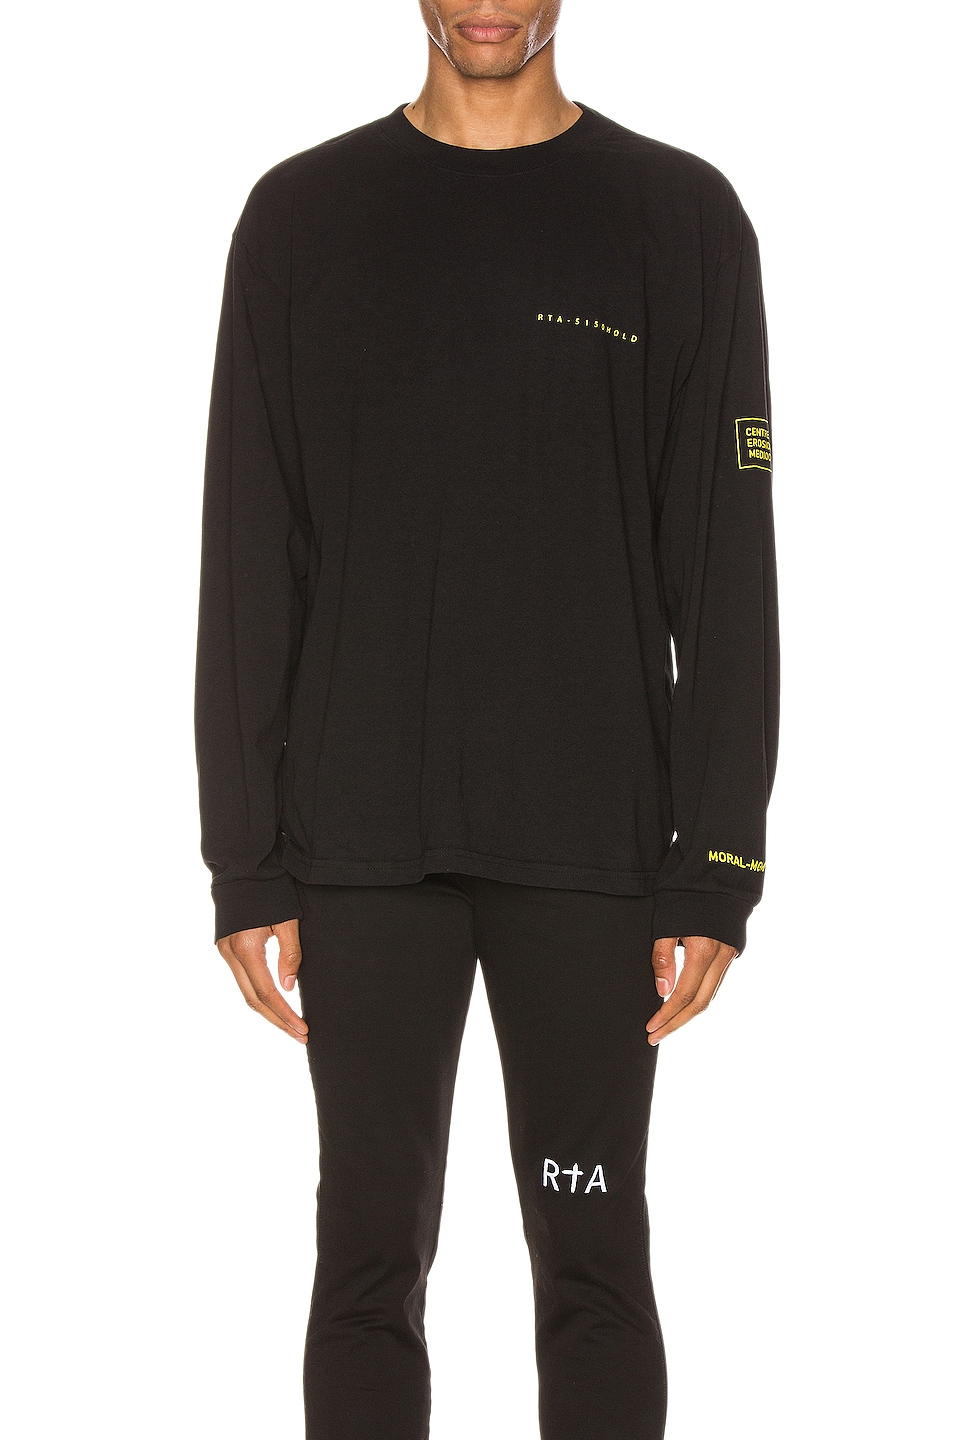 Image 2 of RtA 49 Graphic Tee in Countdown Black